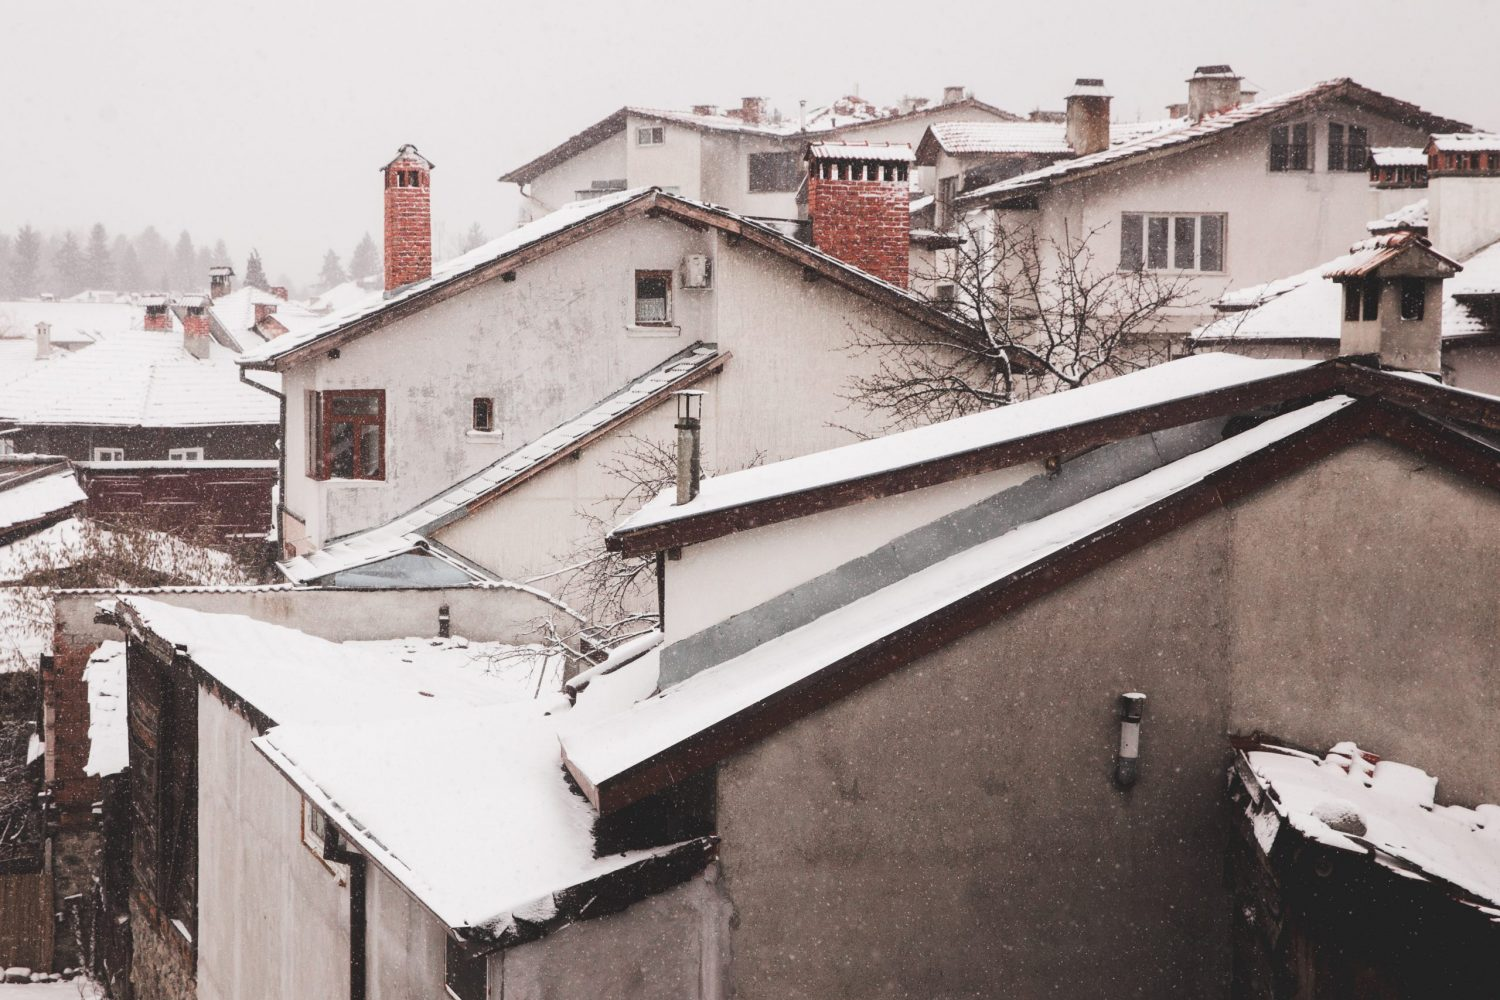 Snow covered rooftops in Bansko, Bulgaria in winter